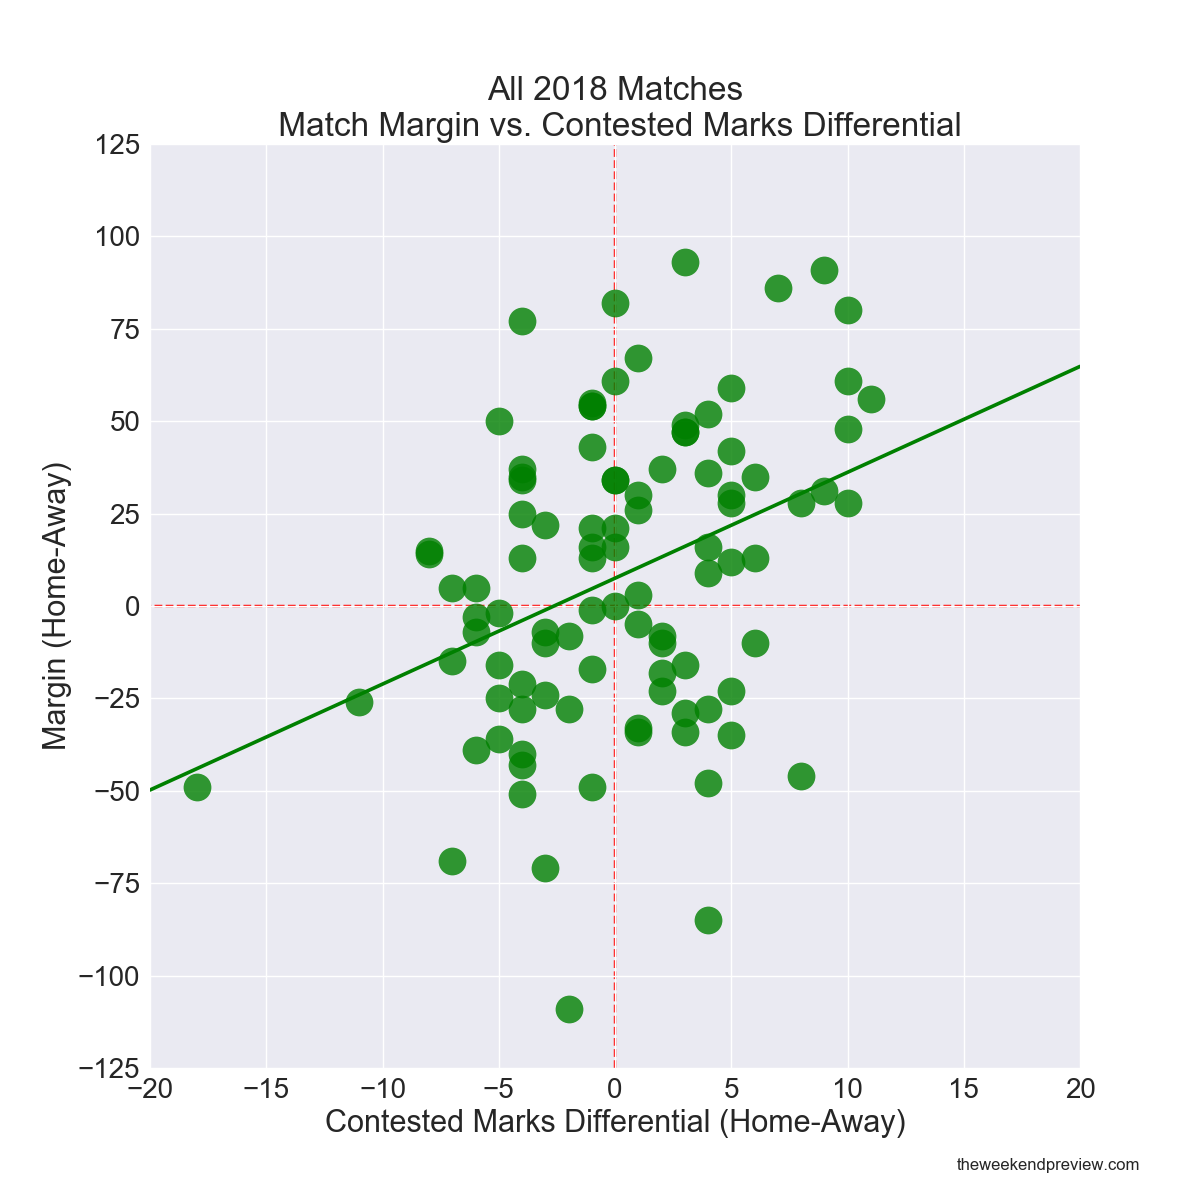 Figure-6: All 2018 Matches – Match Margin vs. Contested Marks Differential